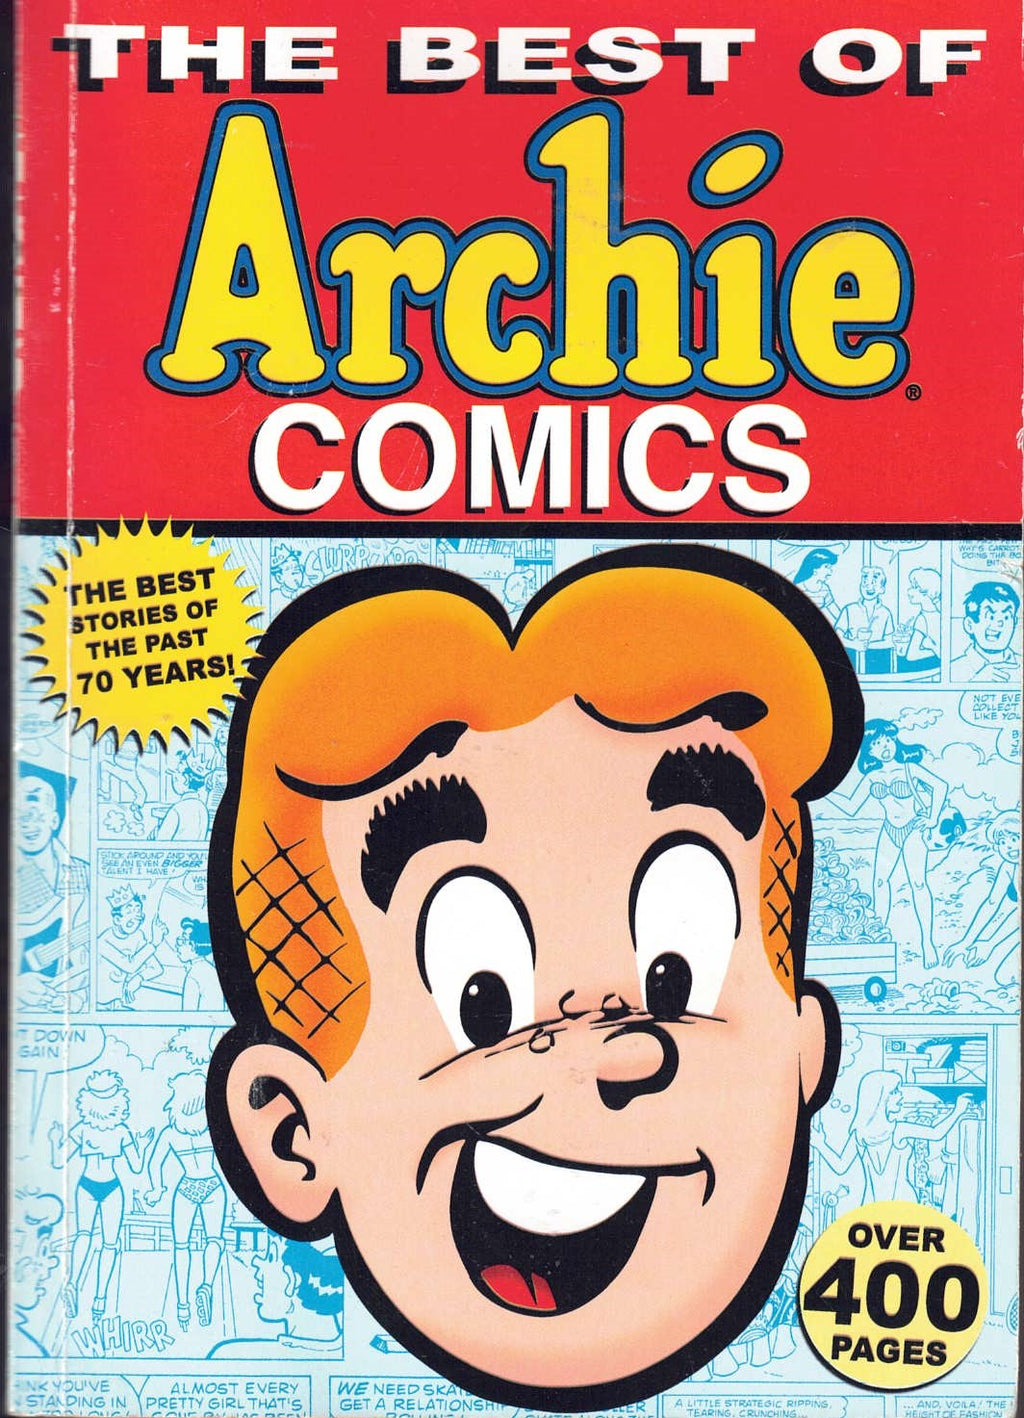 The Best of Archie Comics by Archie Superstars - Busy Bee Emporium